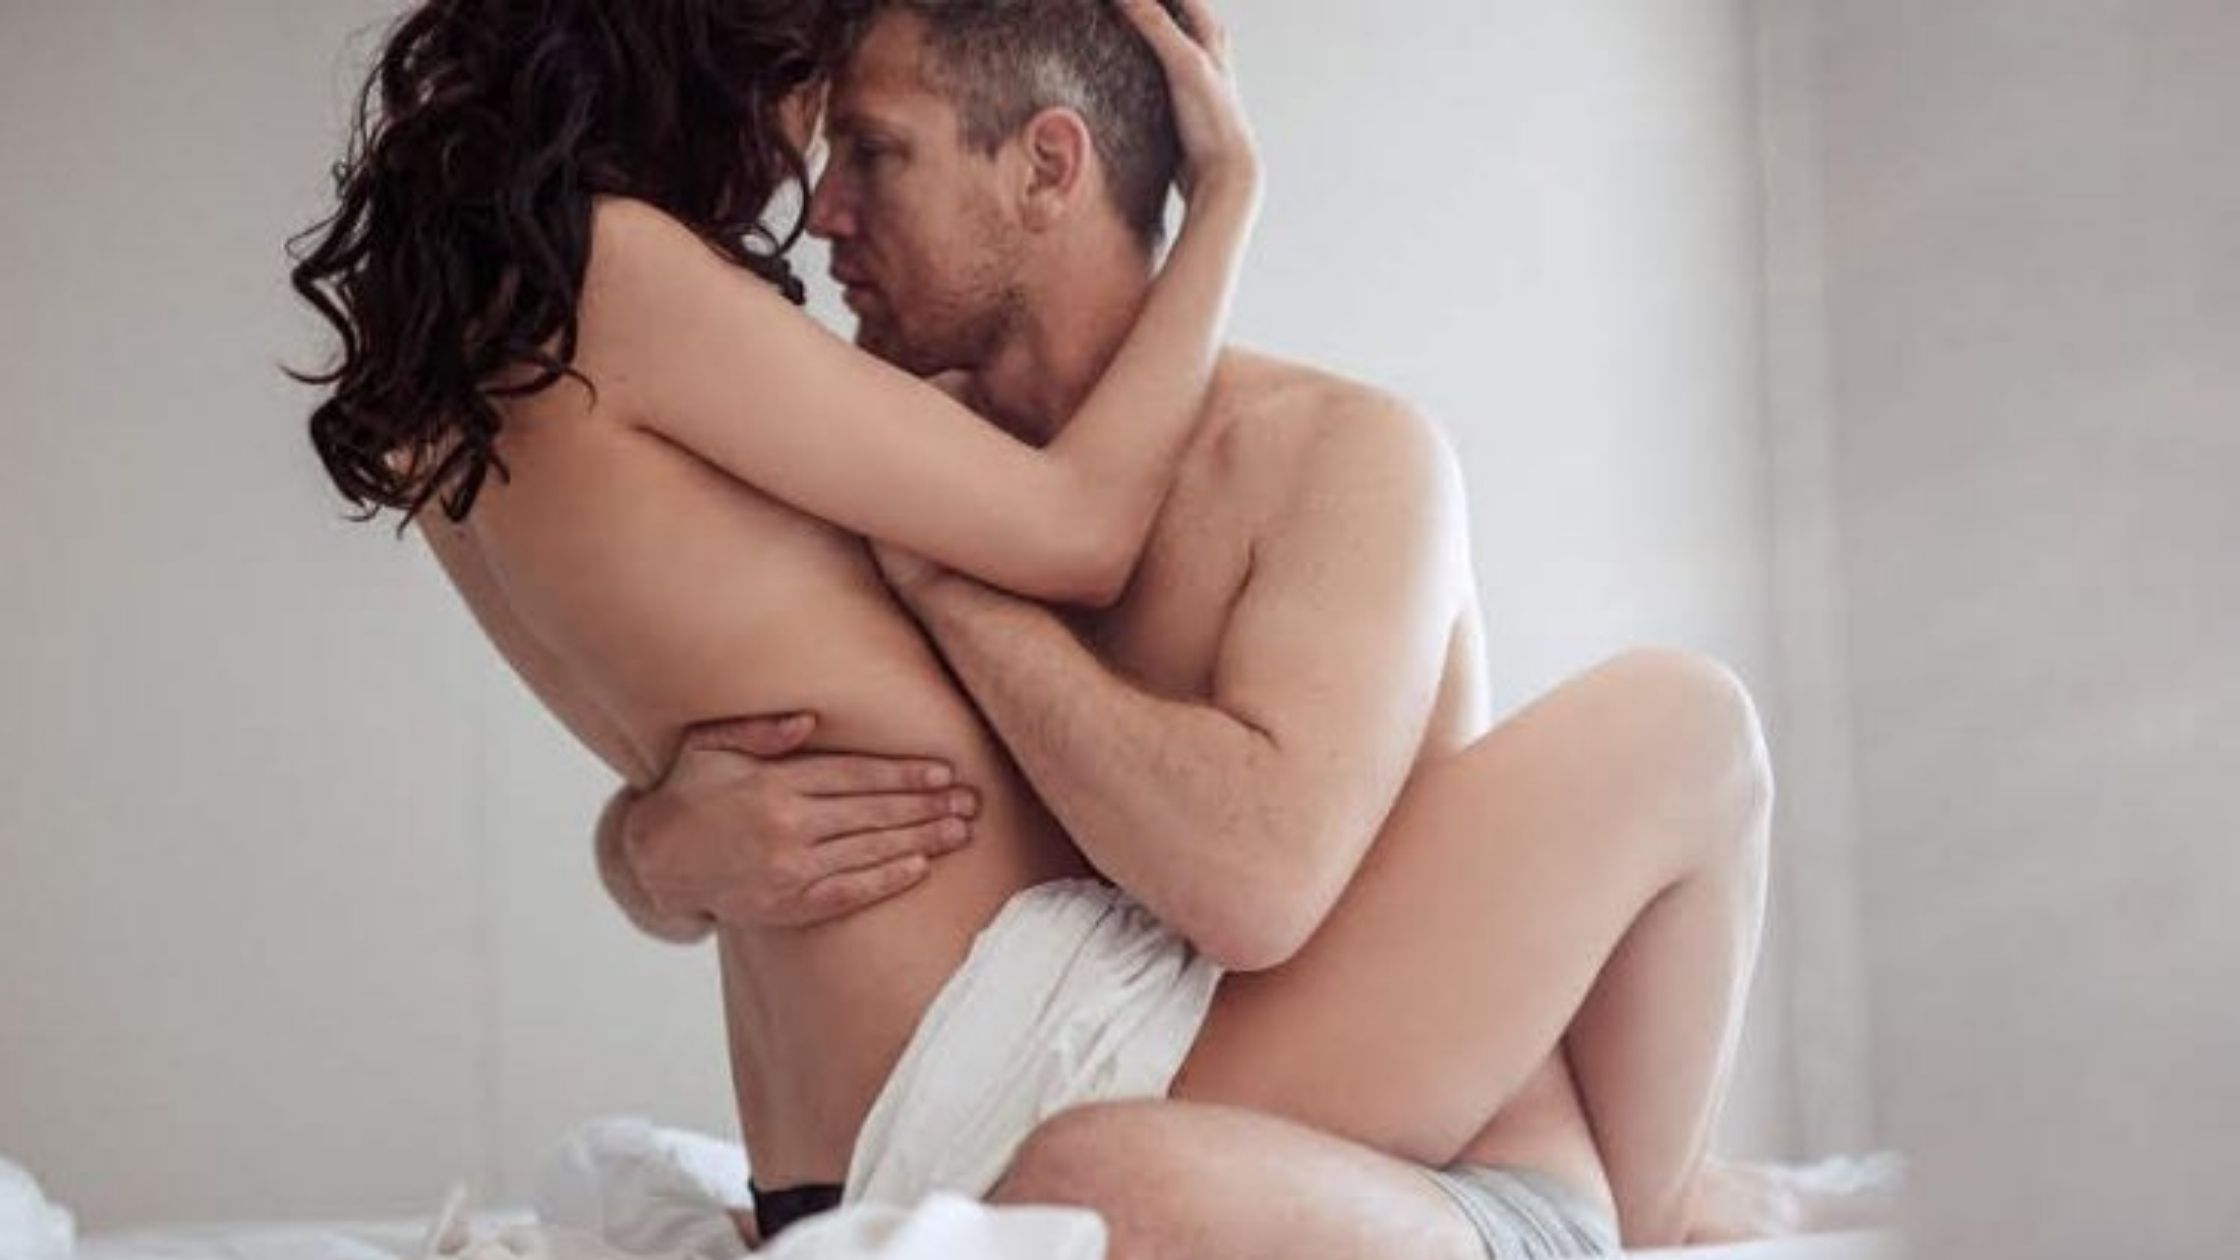 Two sex position can increase your performance and drive